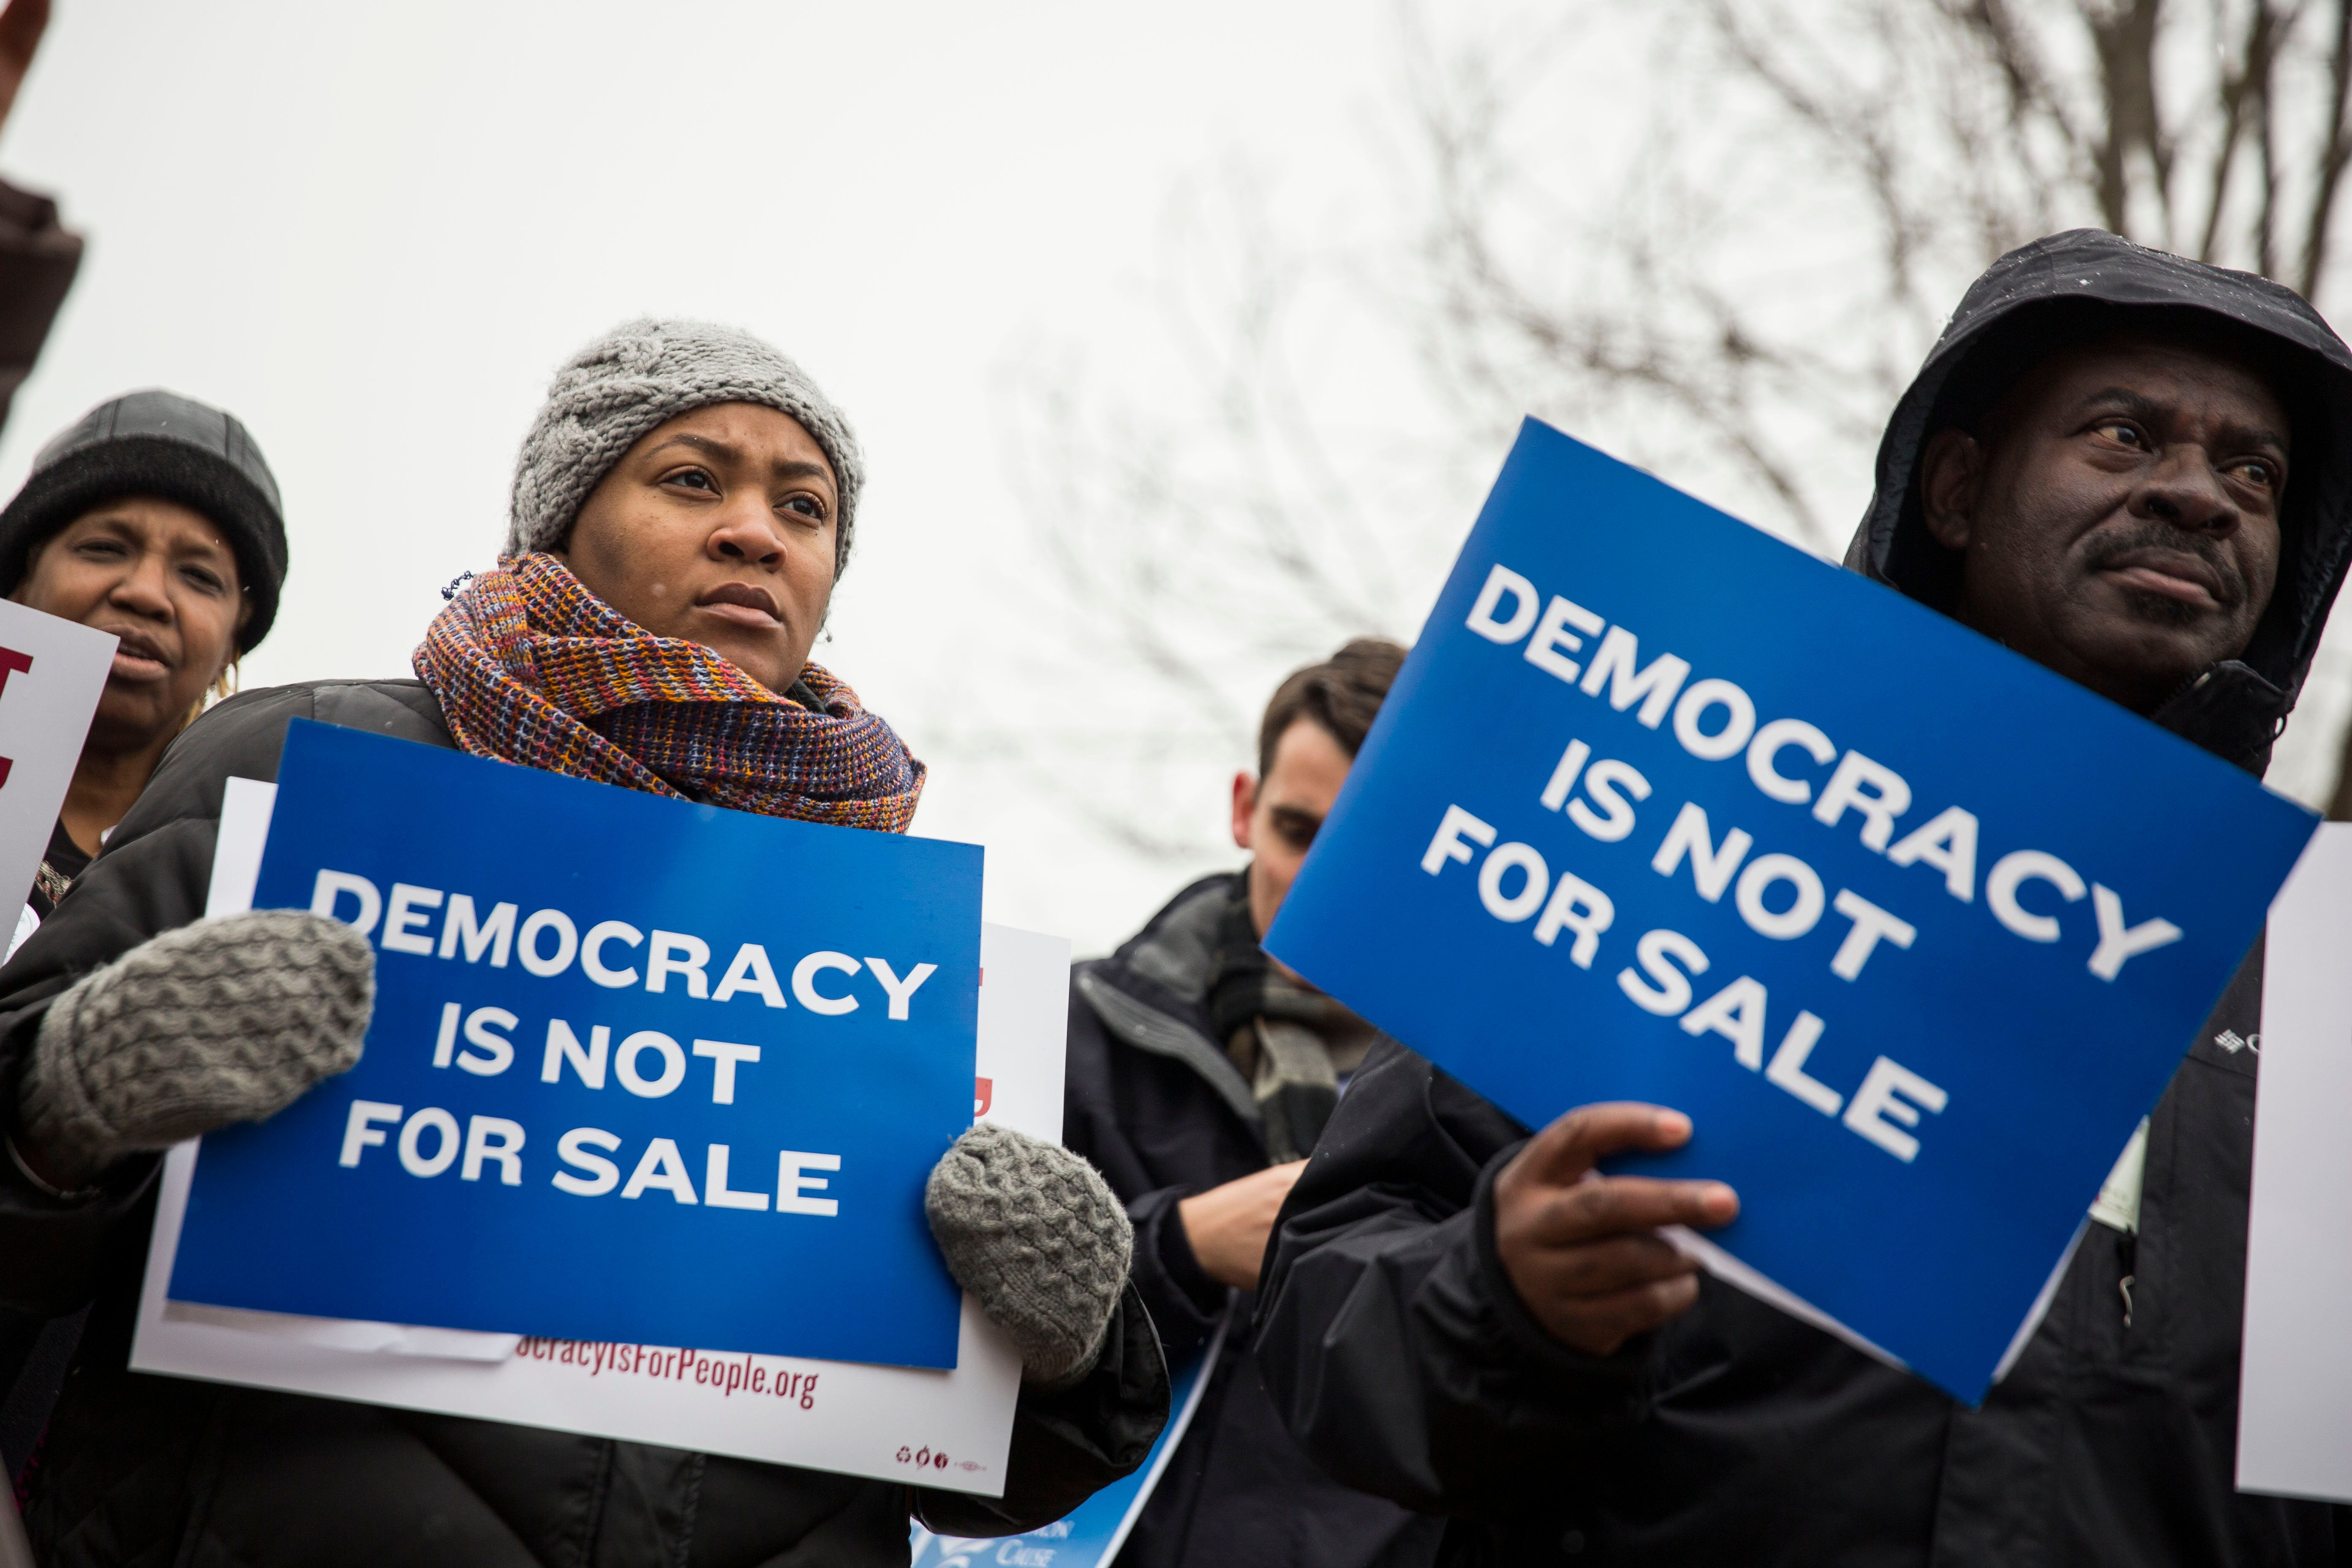 WASHINGTON, DC - JANUARY 21: Attendees hold signs as they listen to speakers during a rally calling for an end to corporate money in politics and to mark the fifth anniversary of the Supreme Court's Citizens United decision, at Lafayette Square near the White House, January 21, 2015 in Washington, DC. Wednesday is the fifth anniversary of the landmark ruling, which paved the way for additional campaign money from corporations, unions and other interests and prevented the government from setting limits on corporate political spending. (Photo by Drew Angerer/Getty Images)